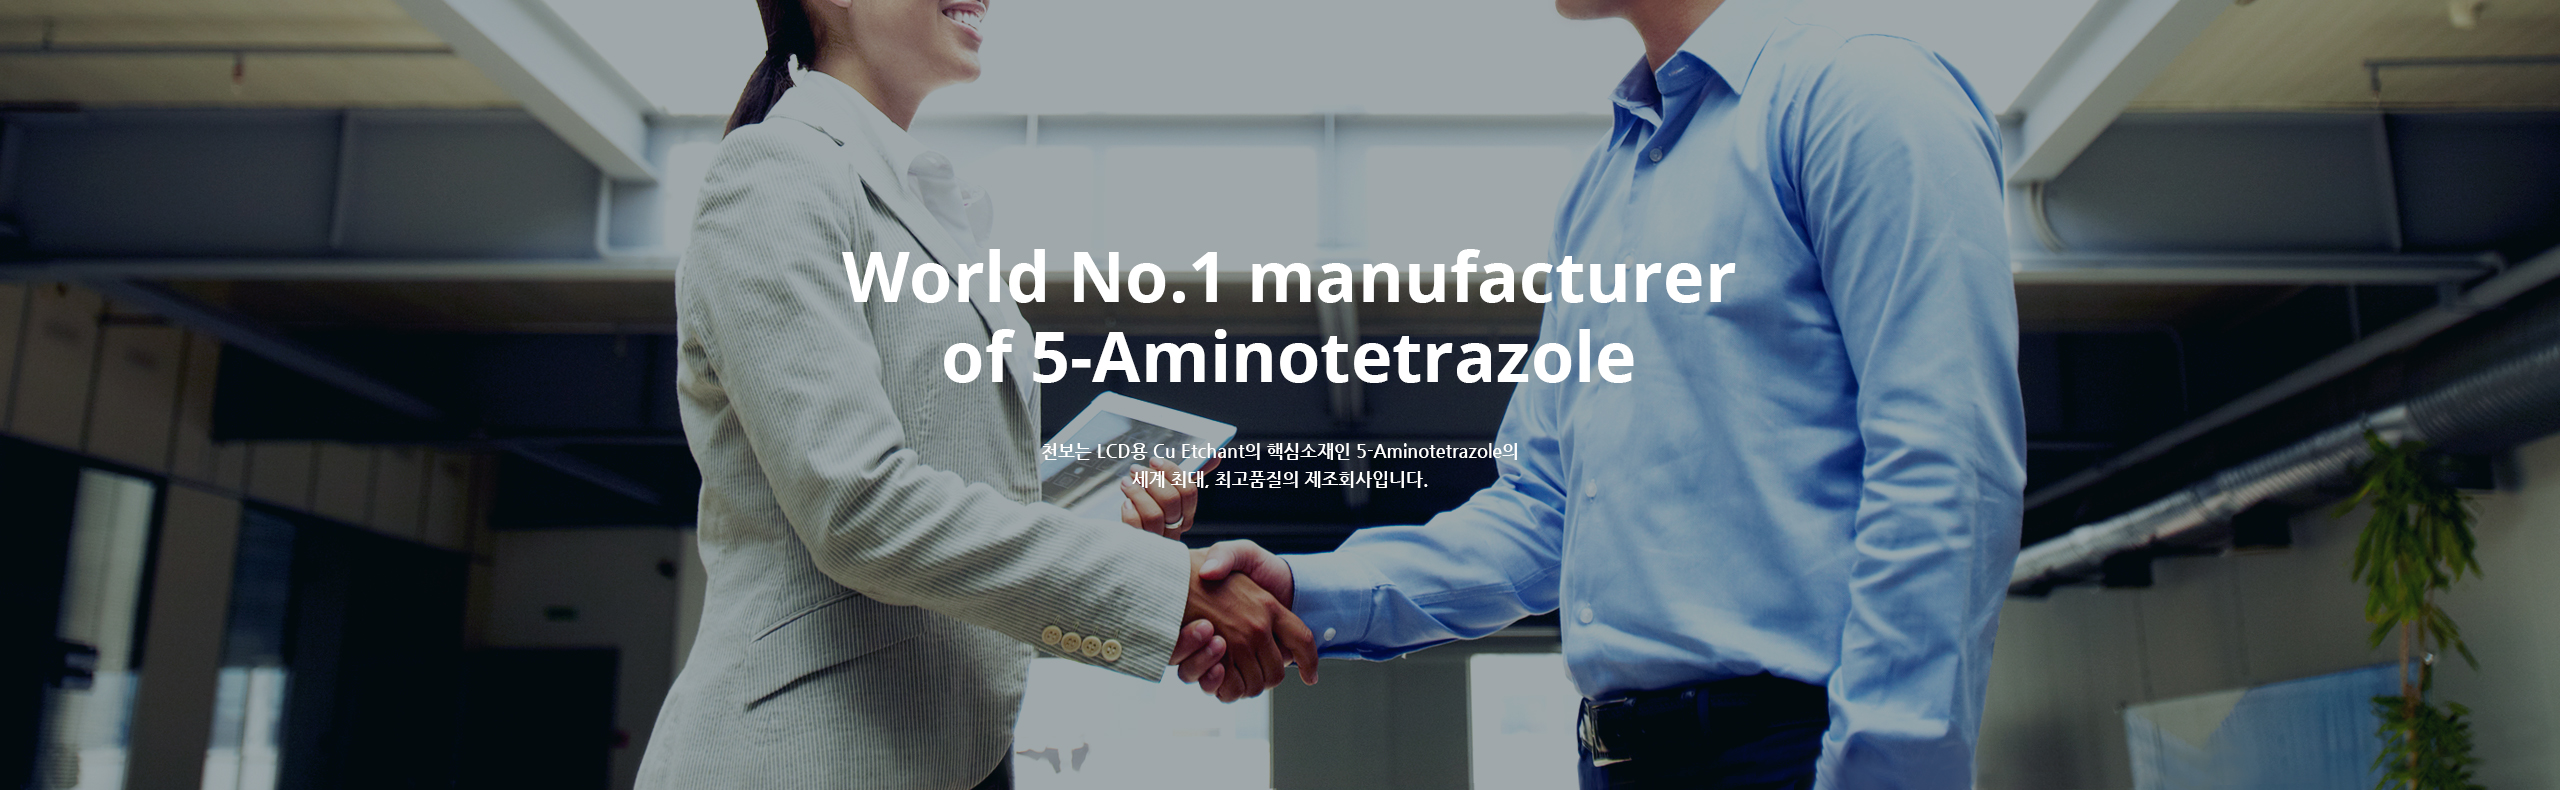 world No1 manufacturer of 5-Aminotertrazole